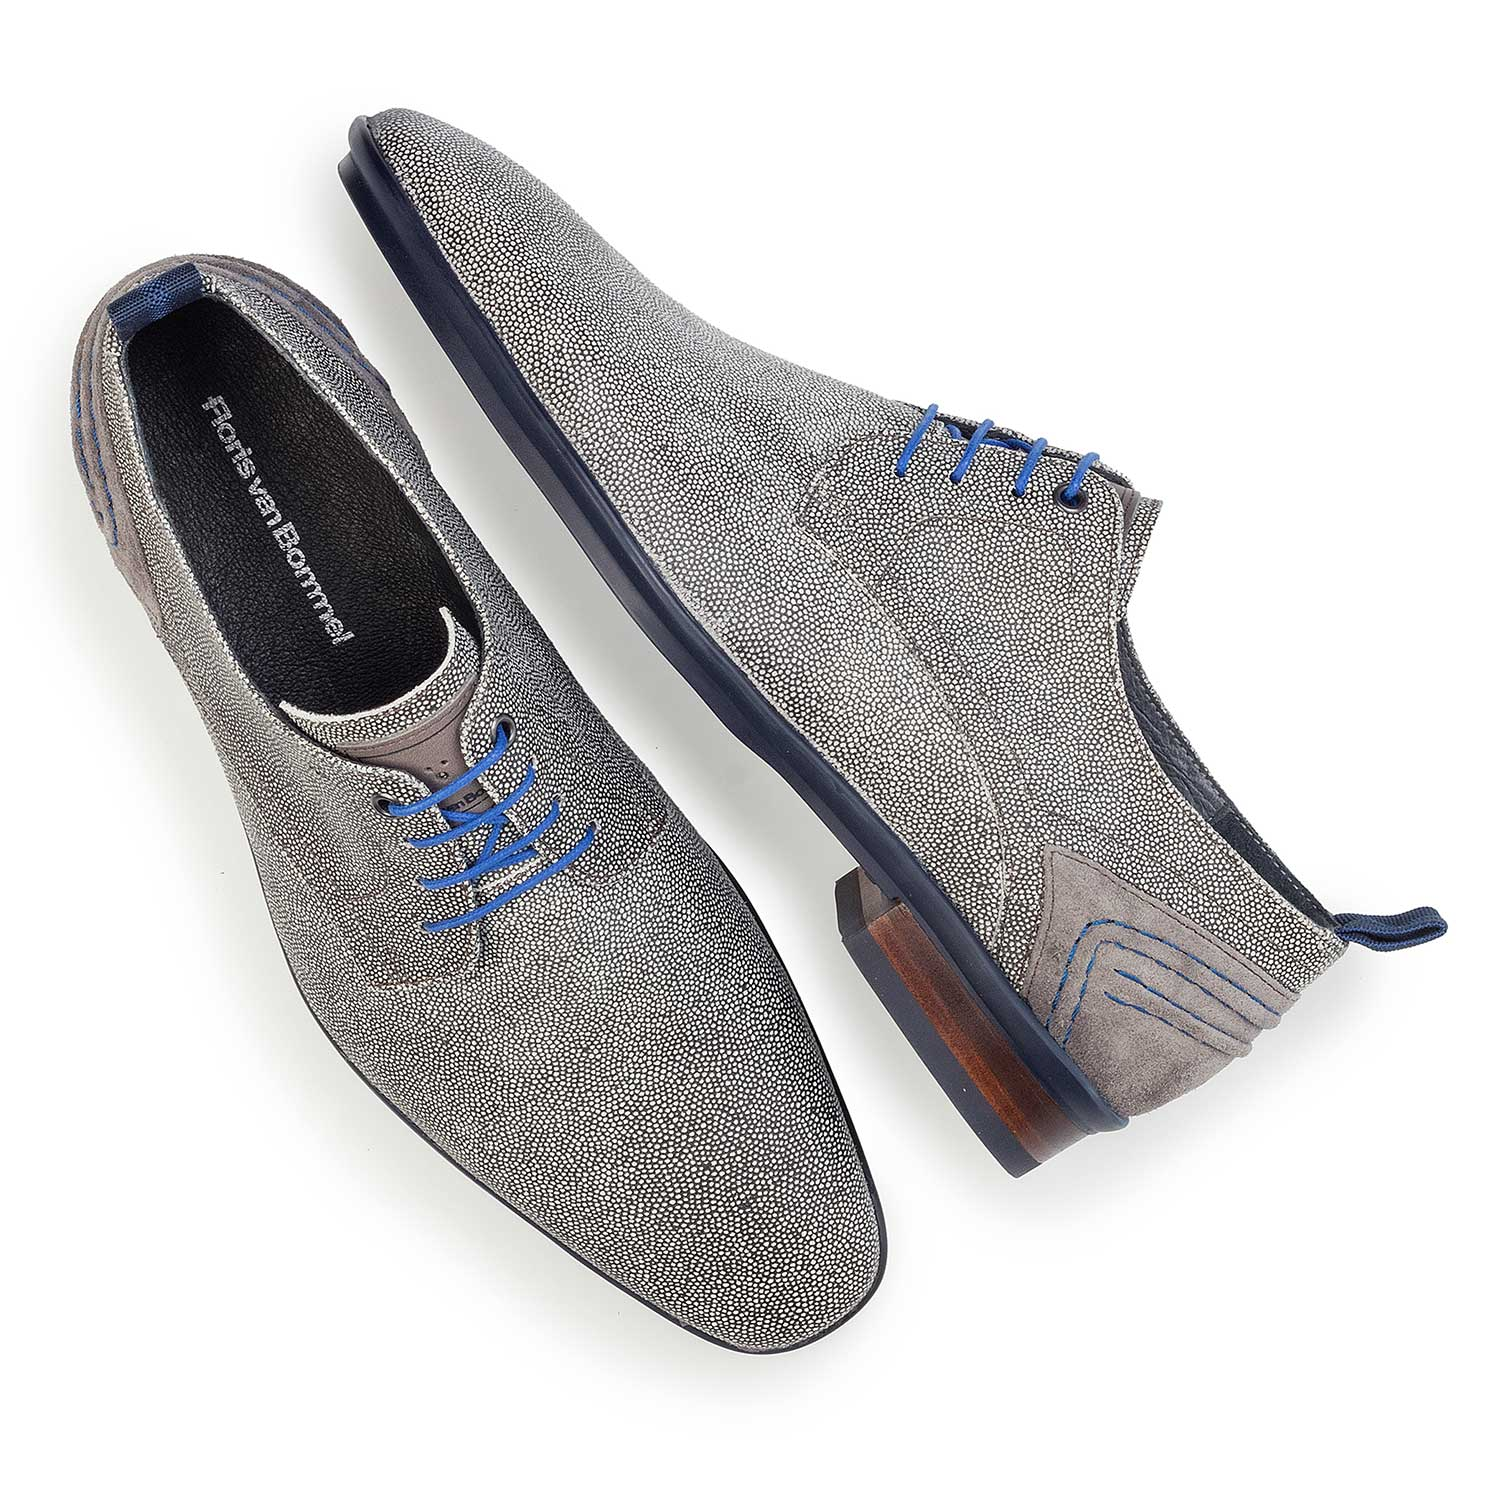 14007/00 - Grey, suede leather lace shoe with pattern